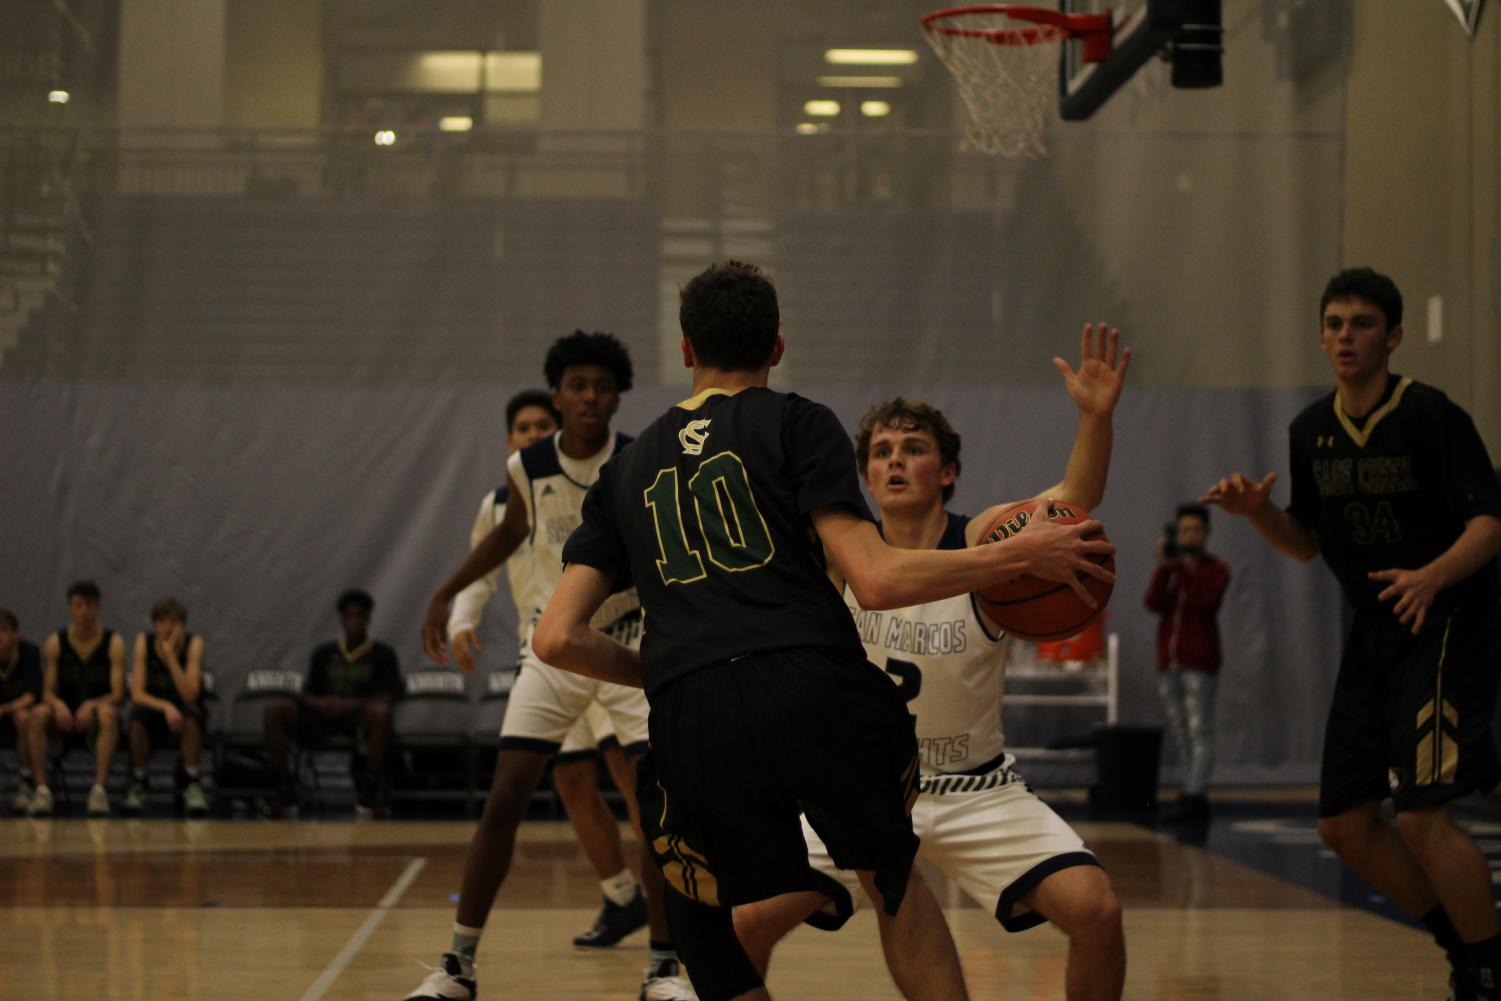 Sage+Creek+varsity+basketball+team+takes+the+offense+against+the+Knights+with+Brady+Canfield+leading+the+charge.+Even+though+San+Marcos+set+up+a+defender%2C+Canfield+pressured+through+to+open+themselves+up+for+the+basket.+